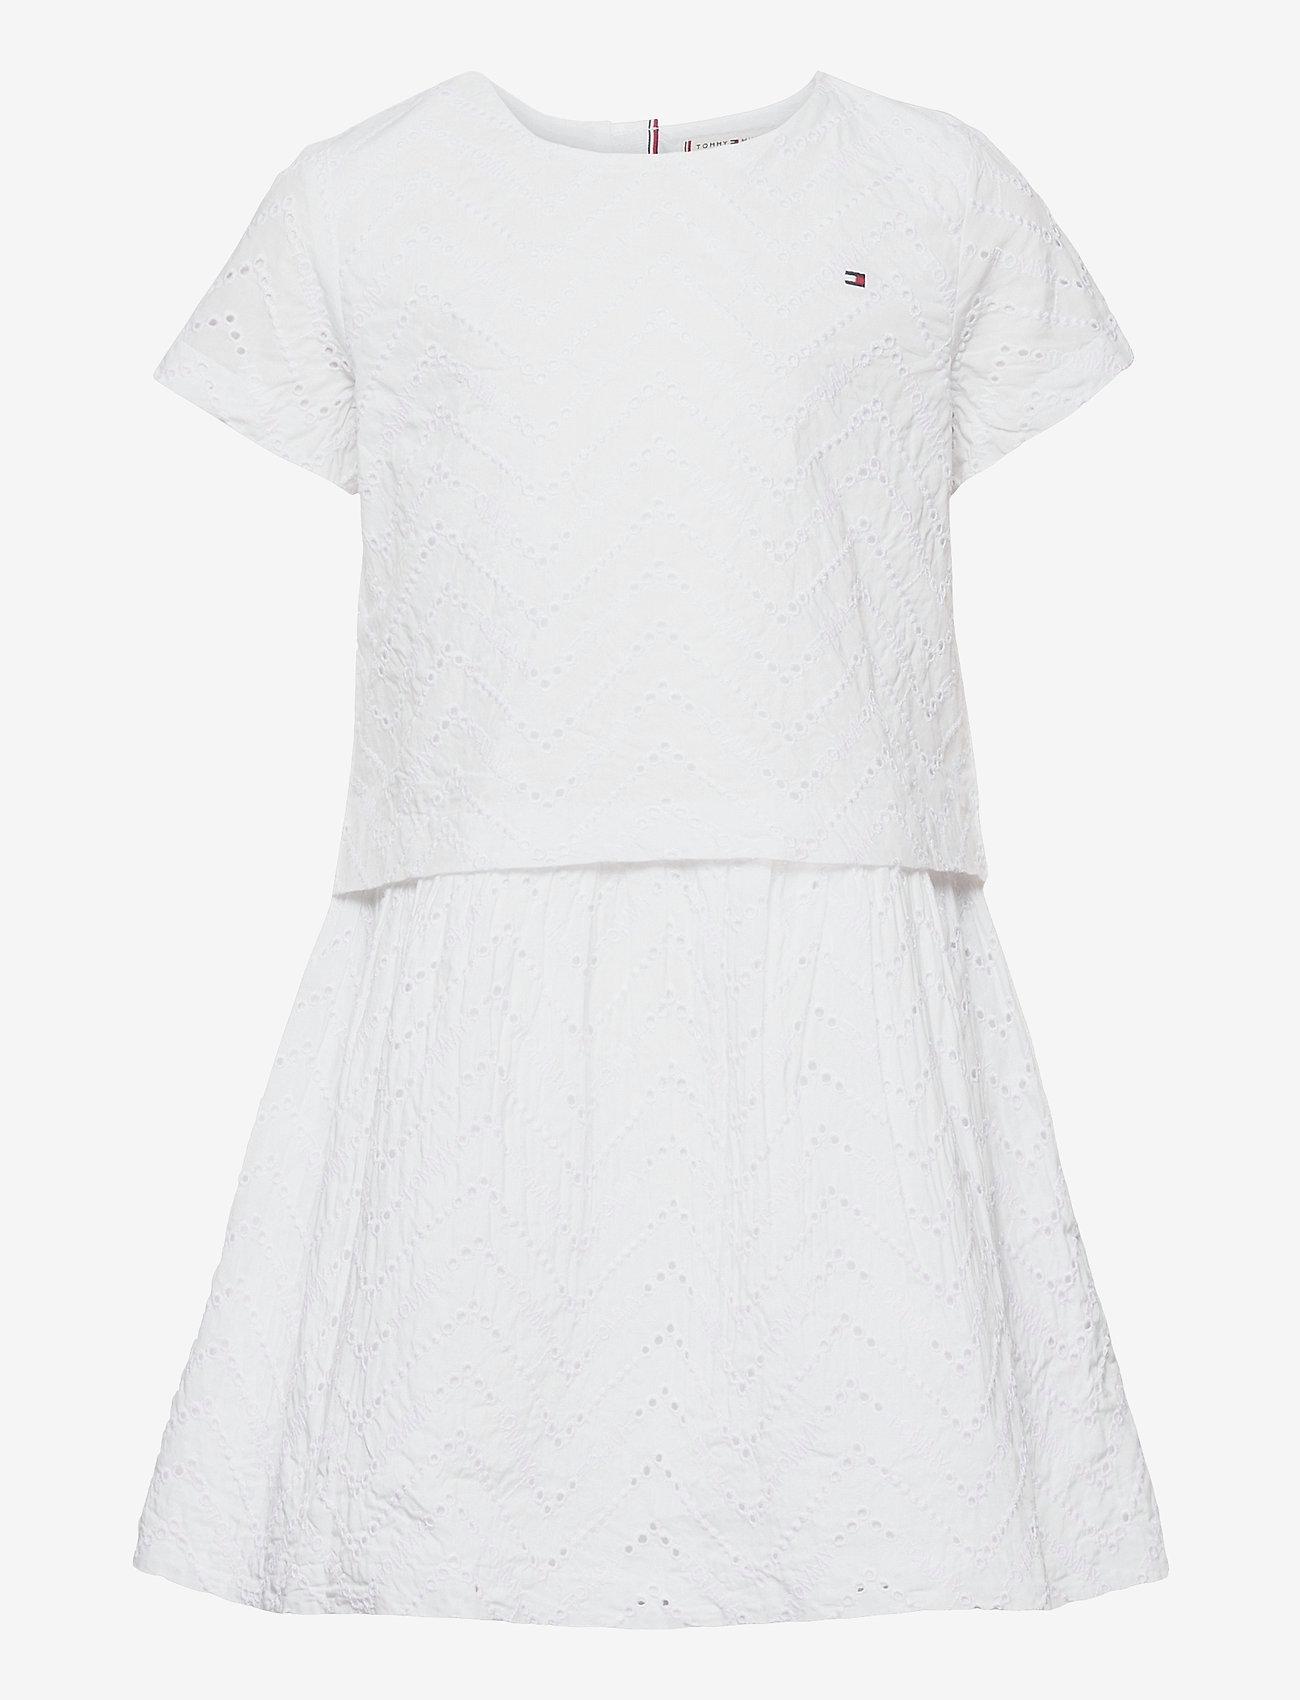 Tommy Hilfiger - BRODERIE ANGLAISE DRESS S/S - kleider - white - 0